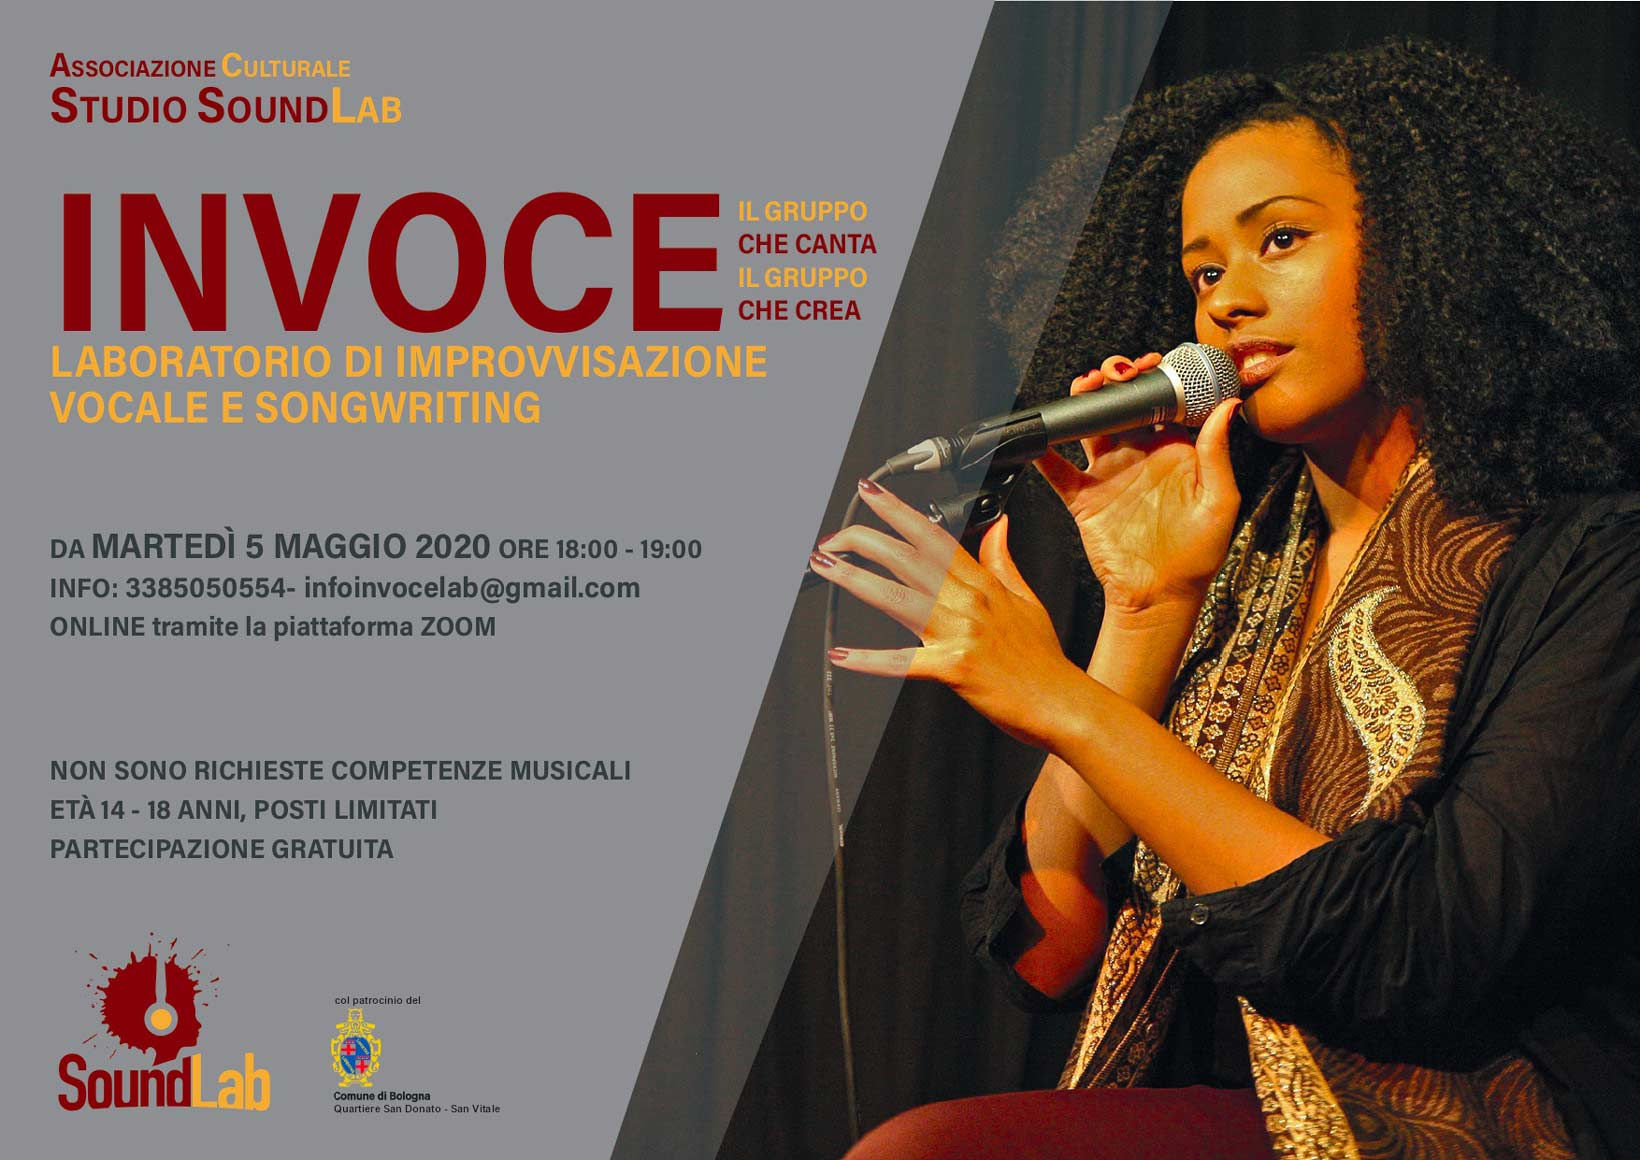 Laboratorio di improvvisazione vocale e songwriting